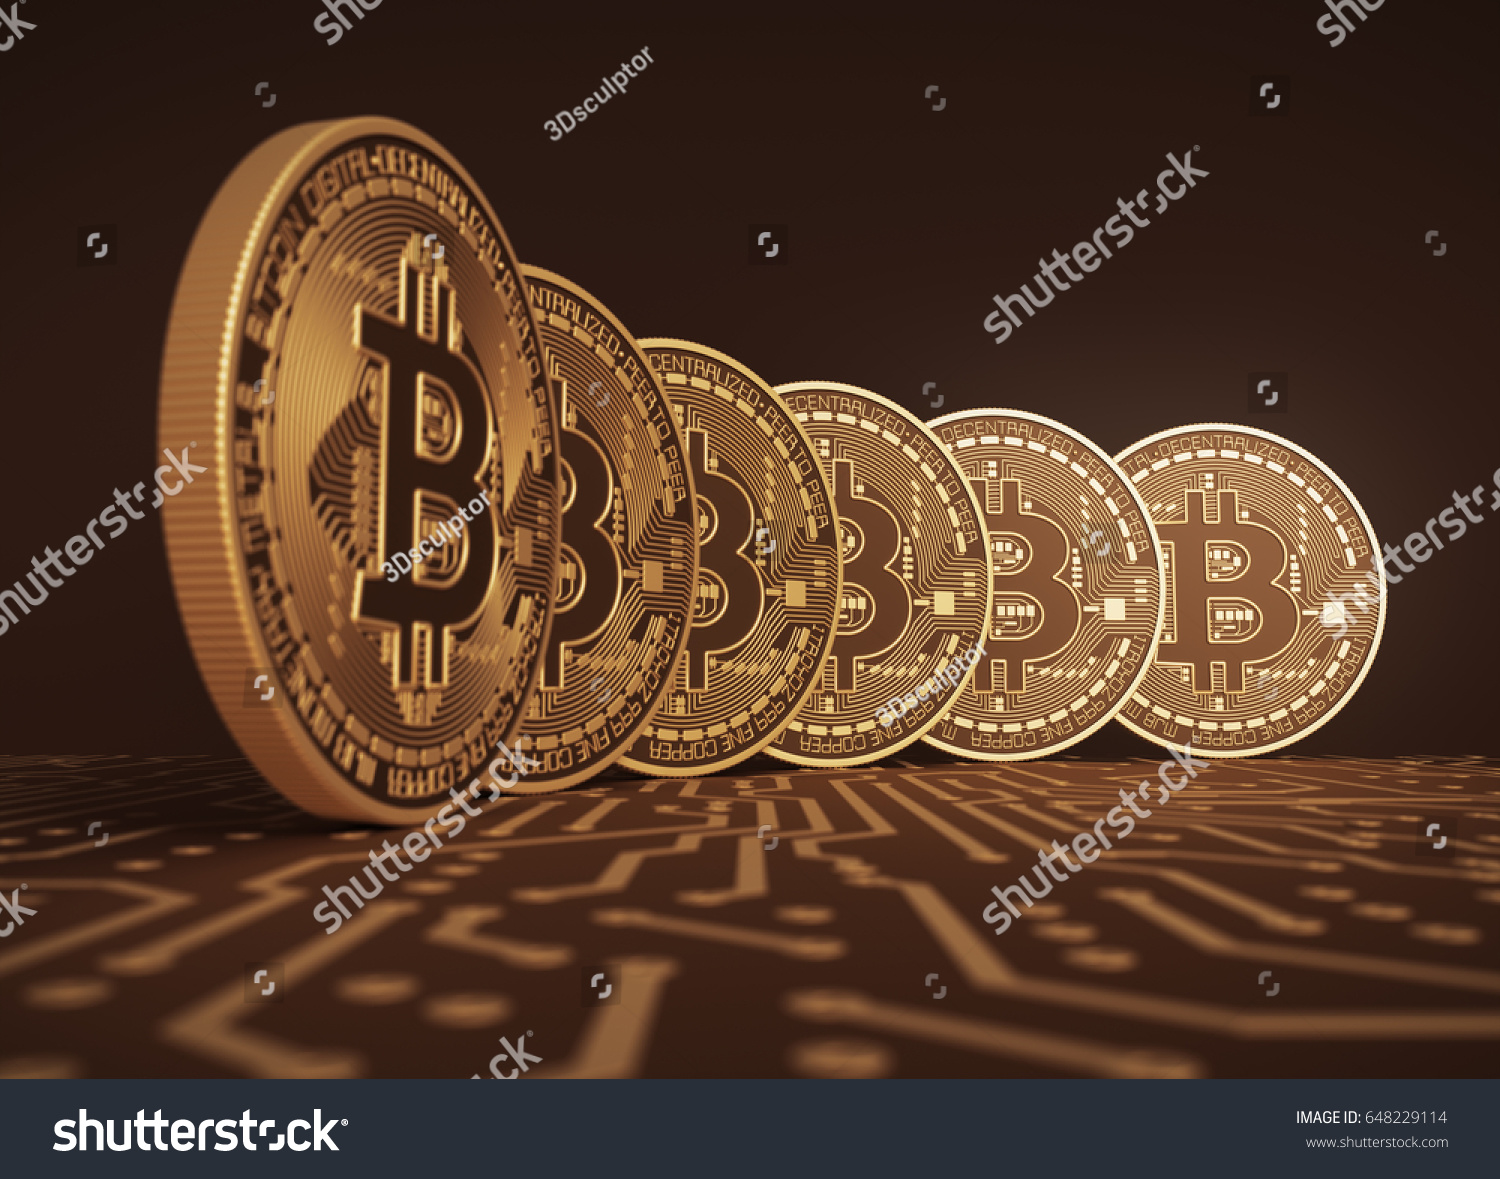 Six Virtual Coins Bitcoins On Printed Stock Illustration 648229114 Pcb The Printedcircuitboard 3d Royalty Free Photography Circuit Board